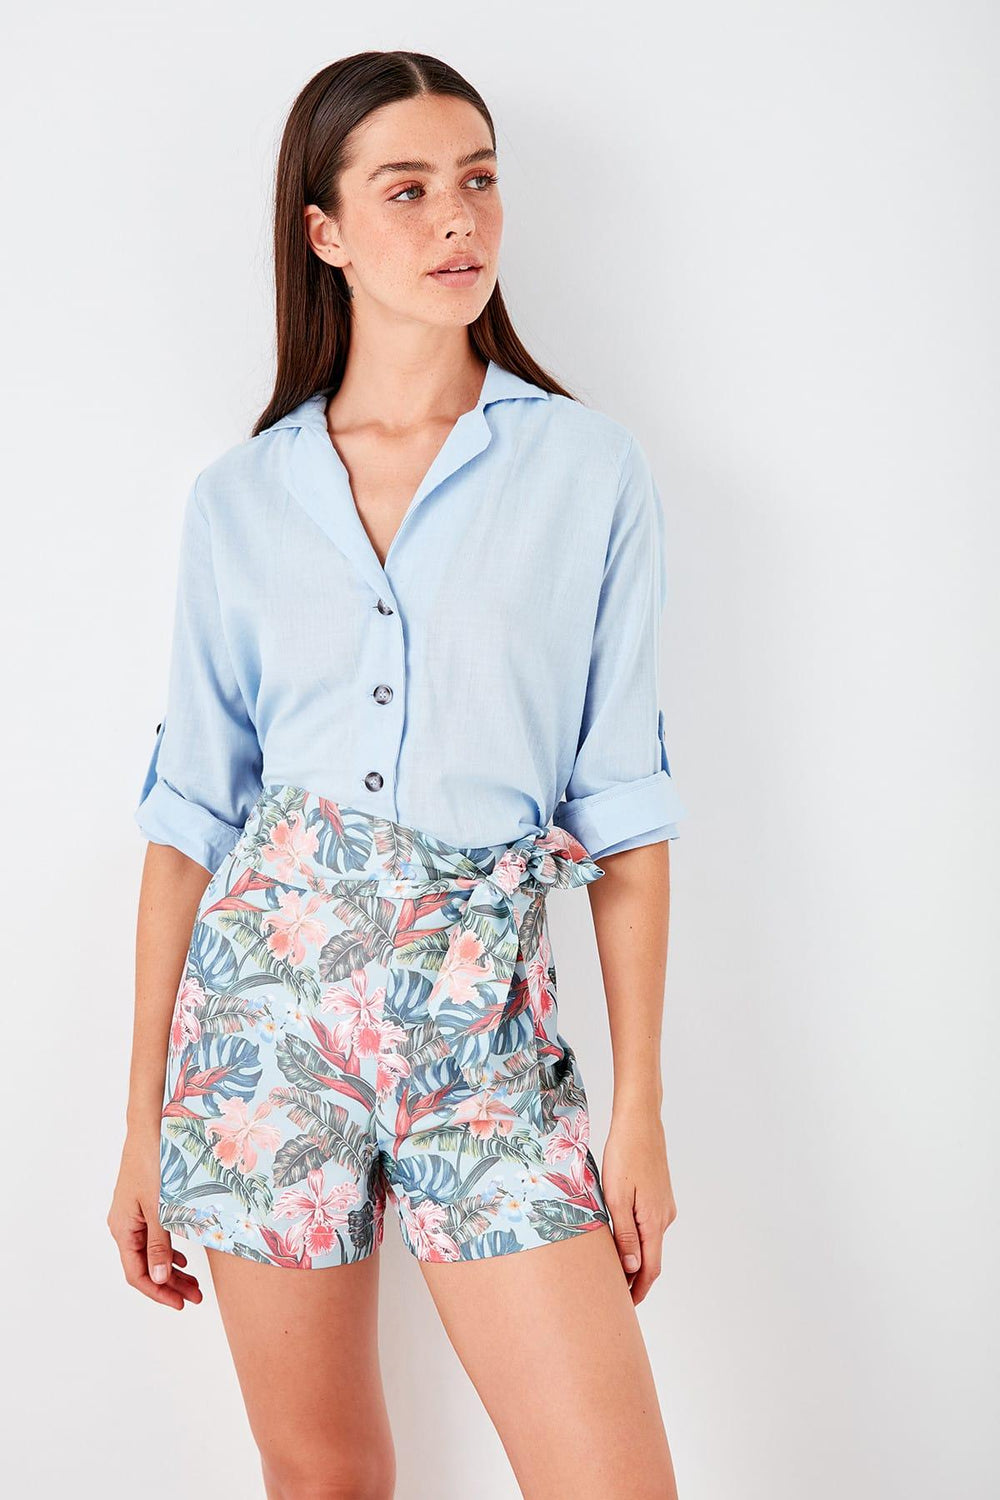 Blue Floral Pattern Shorts - Top Maxy